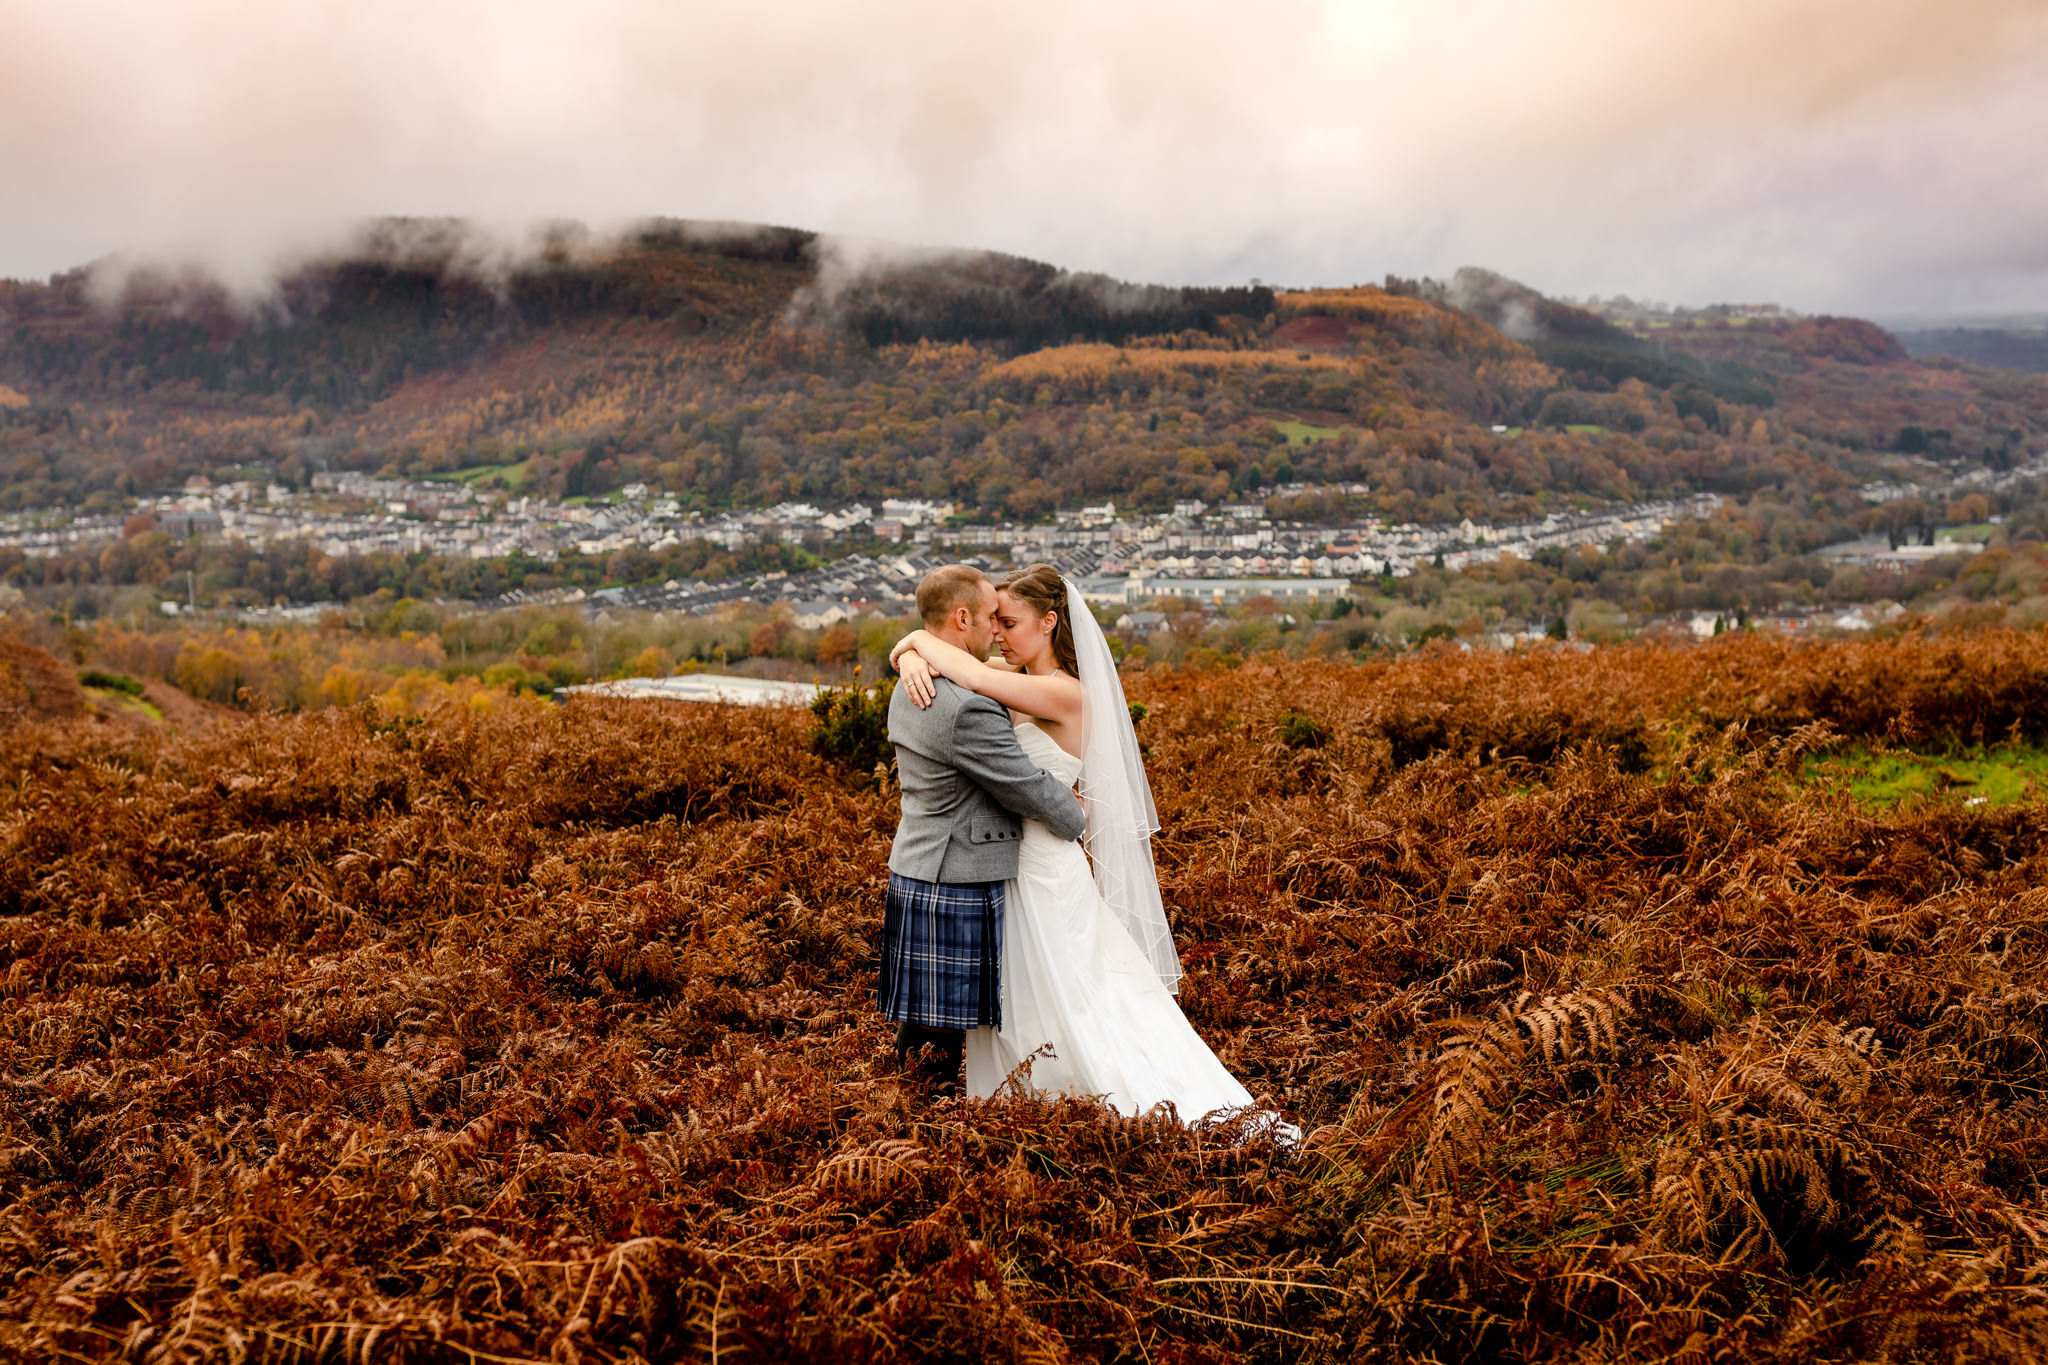 South Wales Wedding Photography - Art by Design